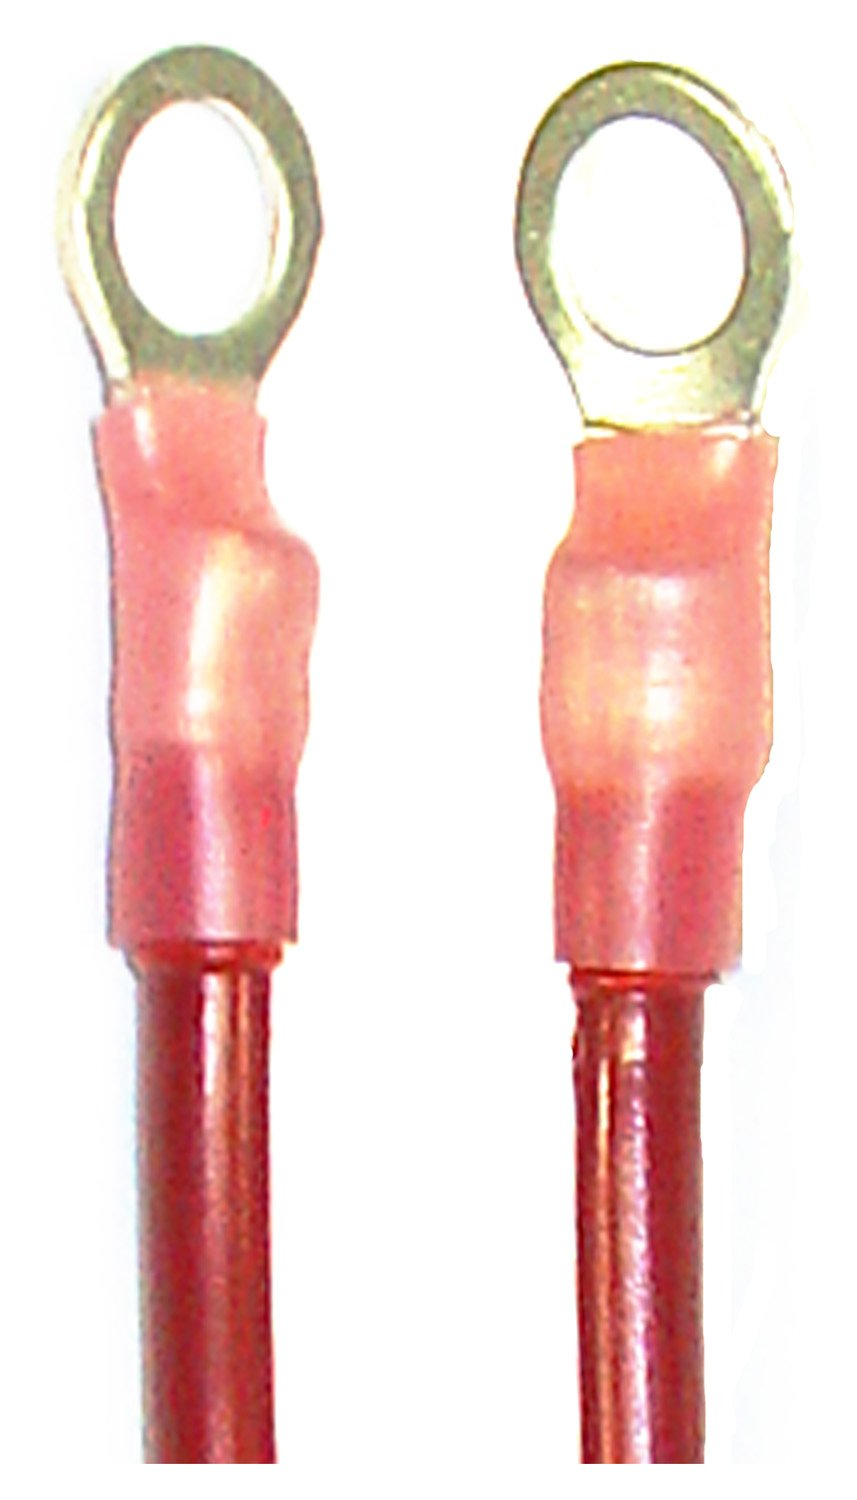 ACDelco 8ST8 Professional Alternator Jumper Cable